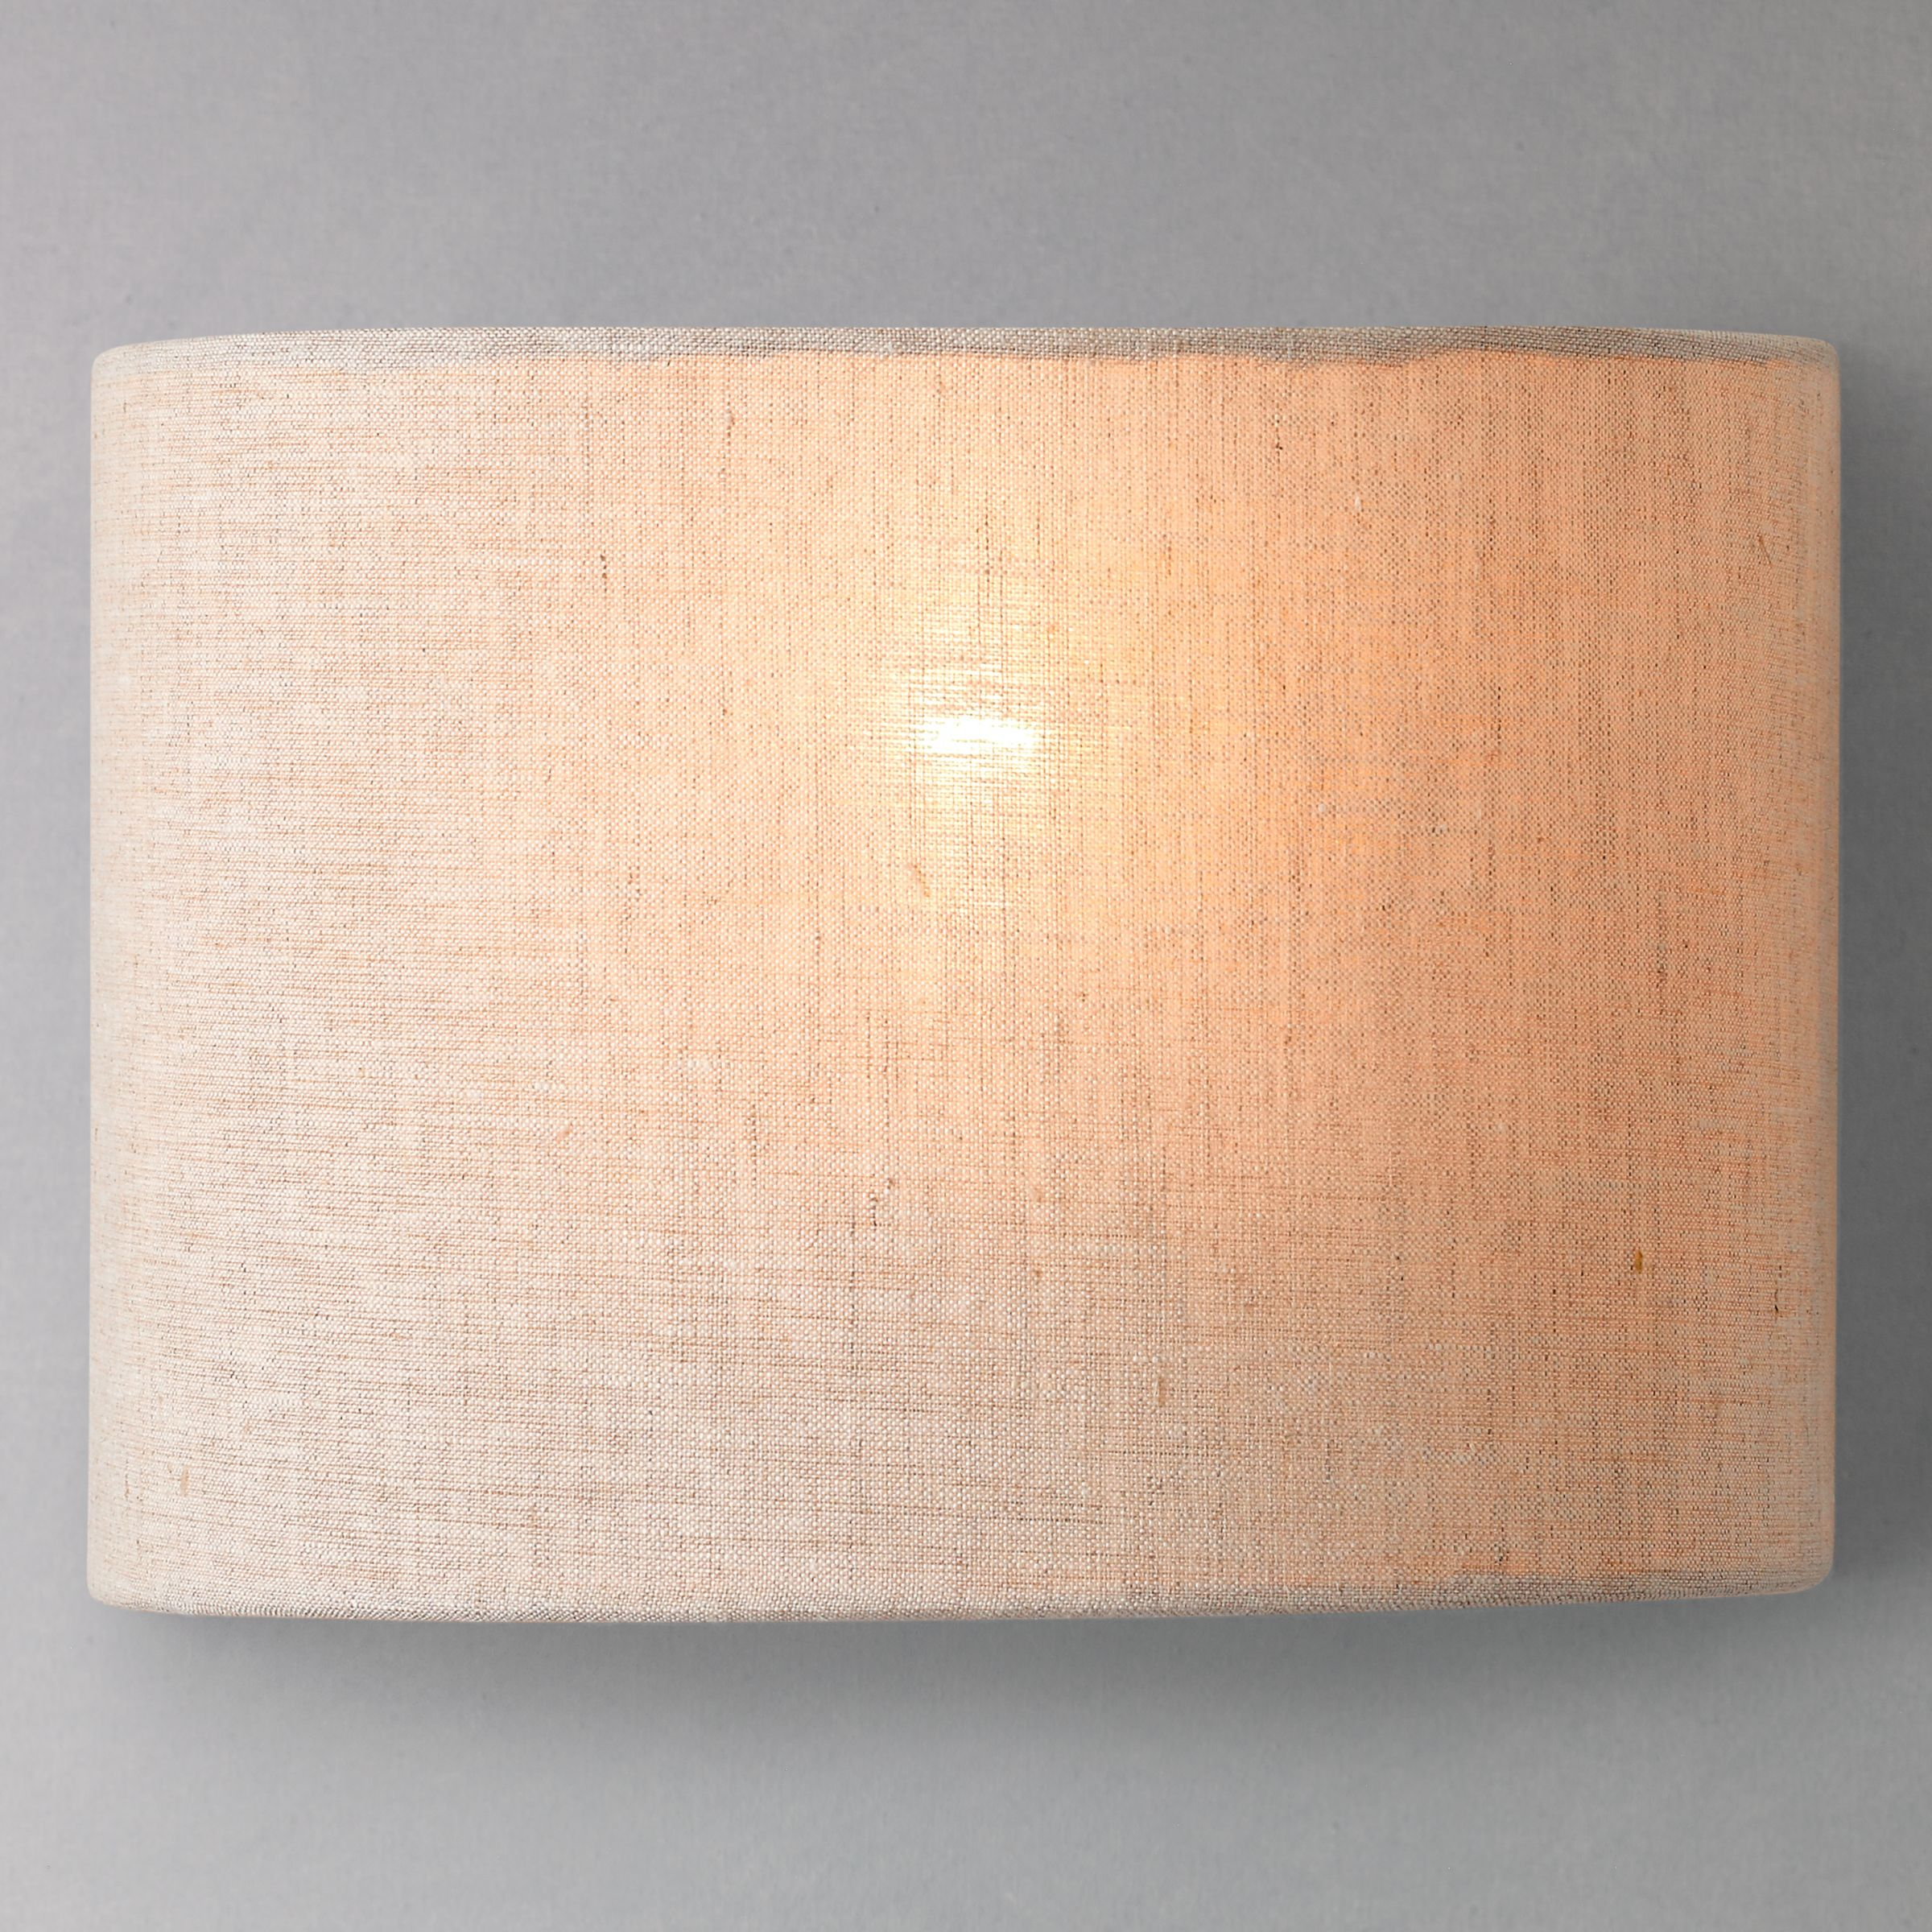 Wall Lamps John Lewis : Remarkable Wall Lights John Lewis Pictures - Best inspiration home design - eumolp.us